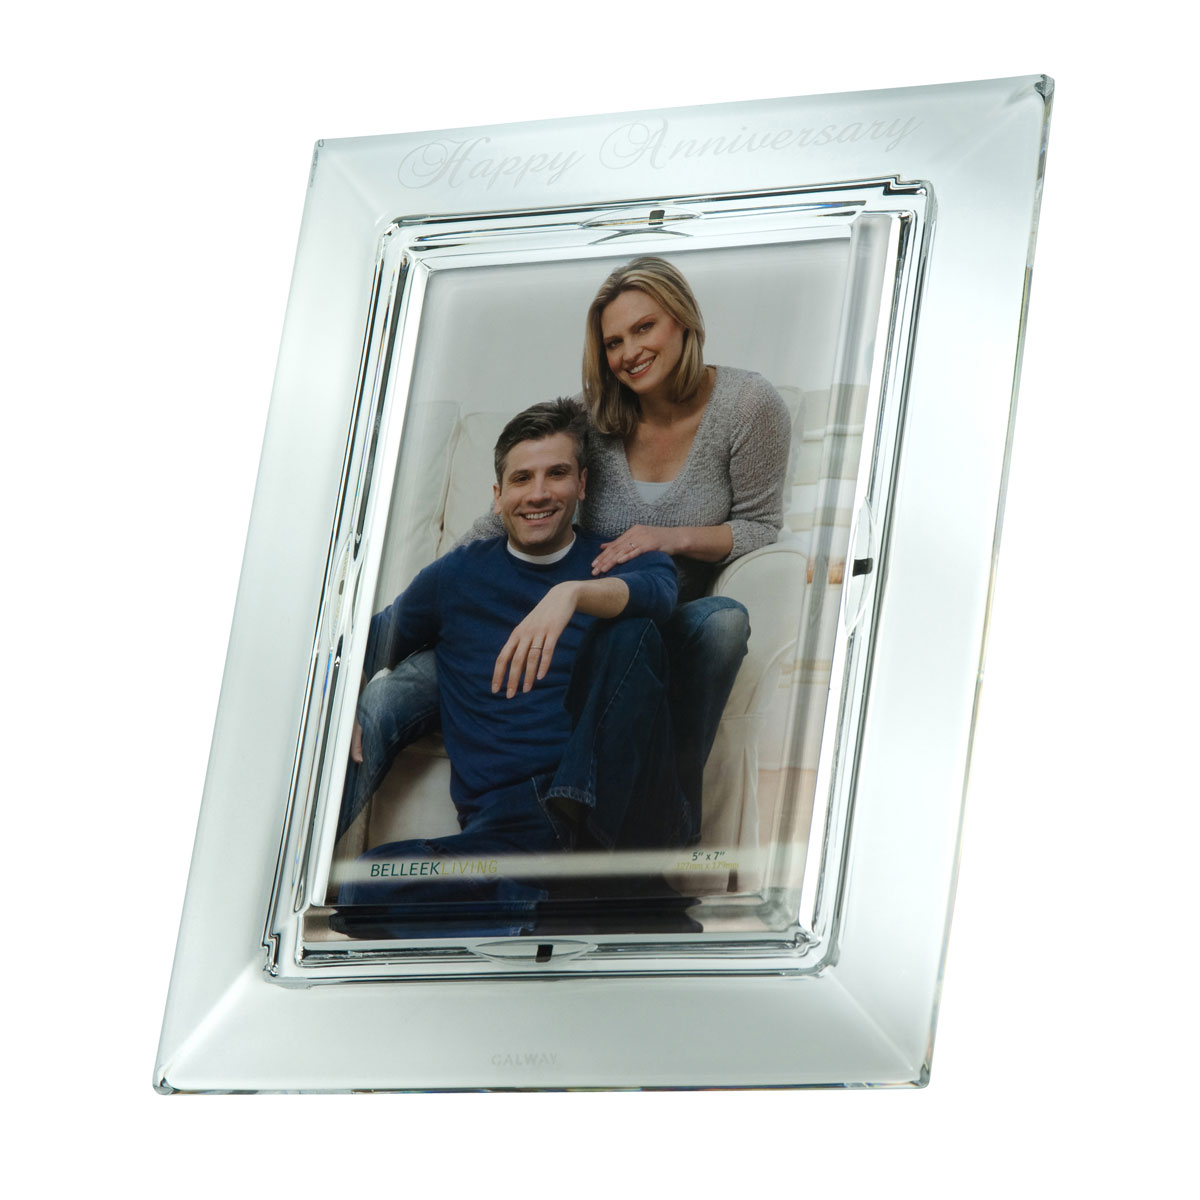 "Galway Happy Anniversary 5x7"" Picture Frame"